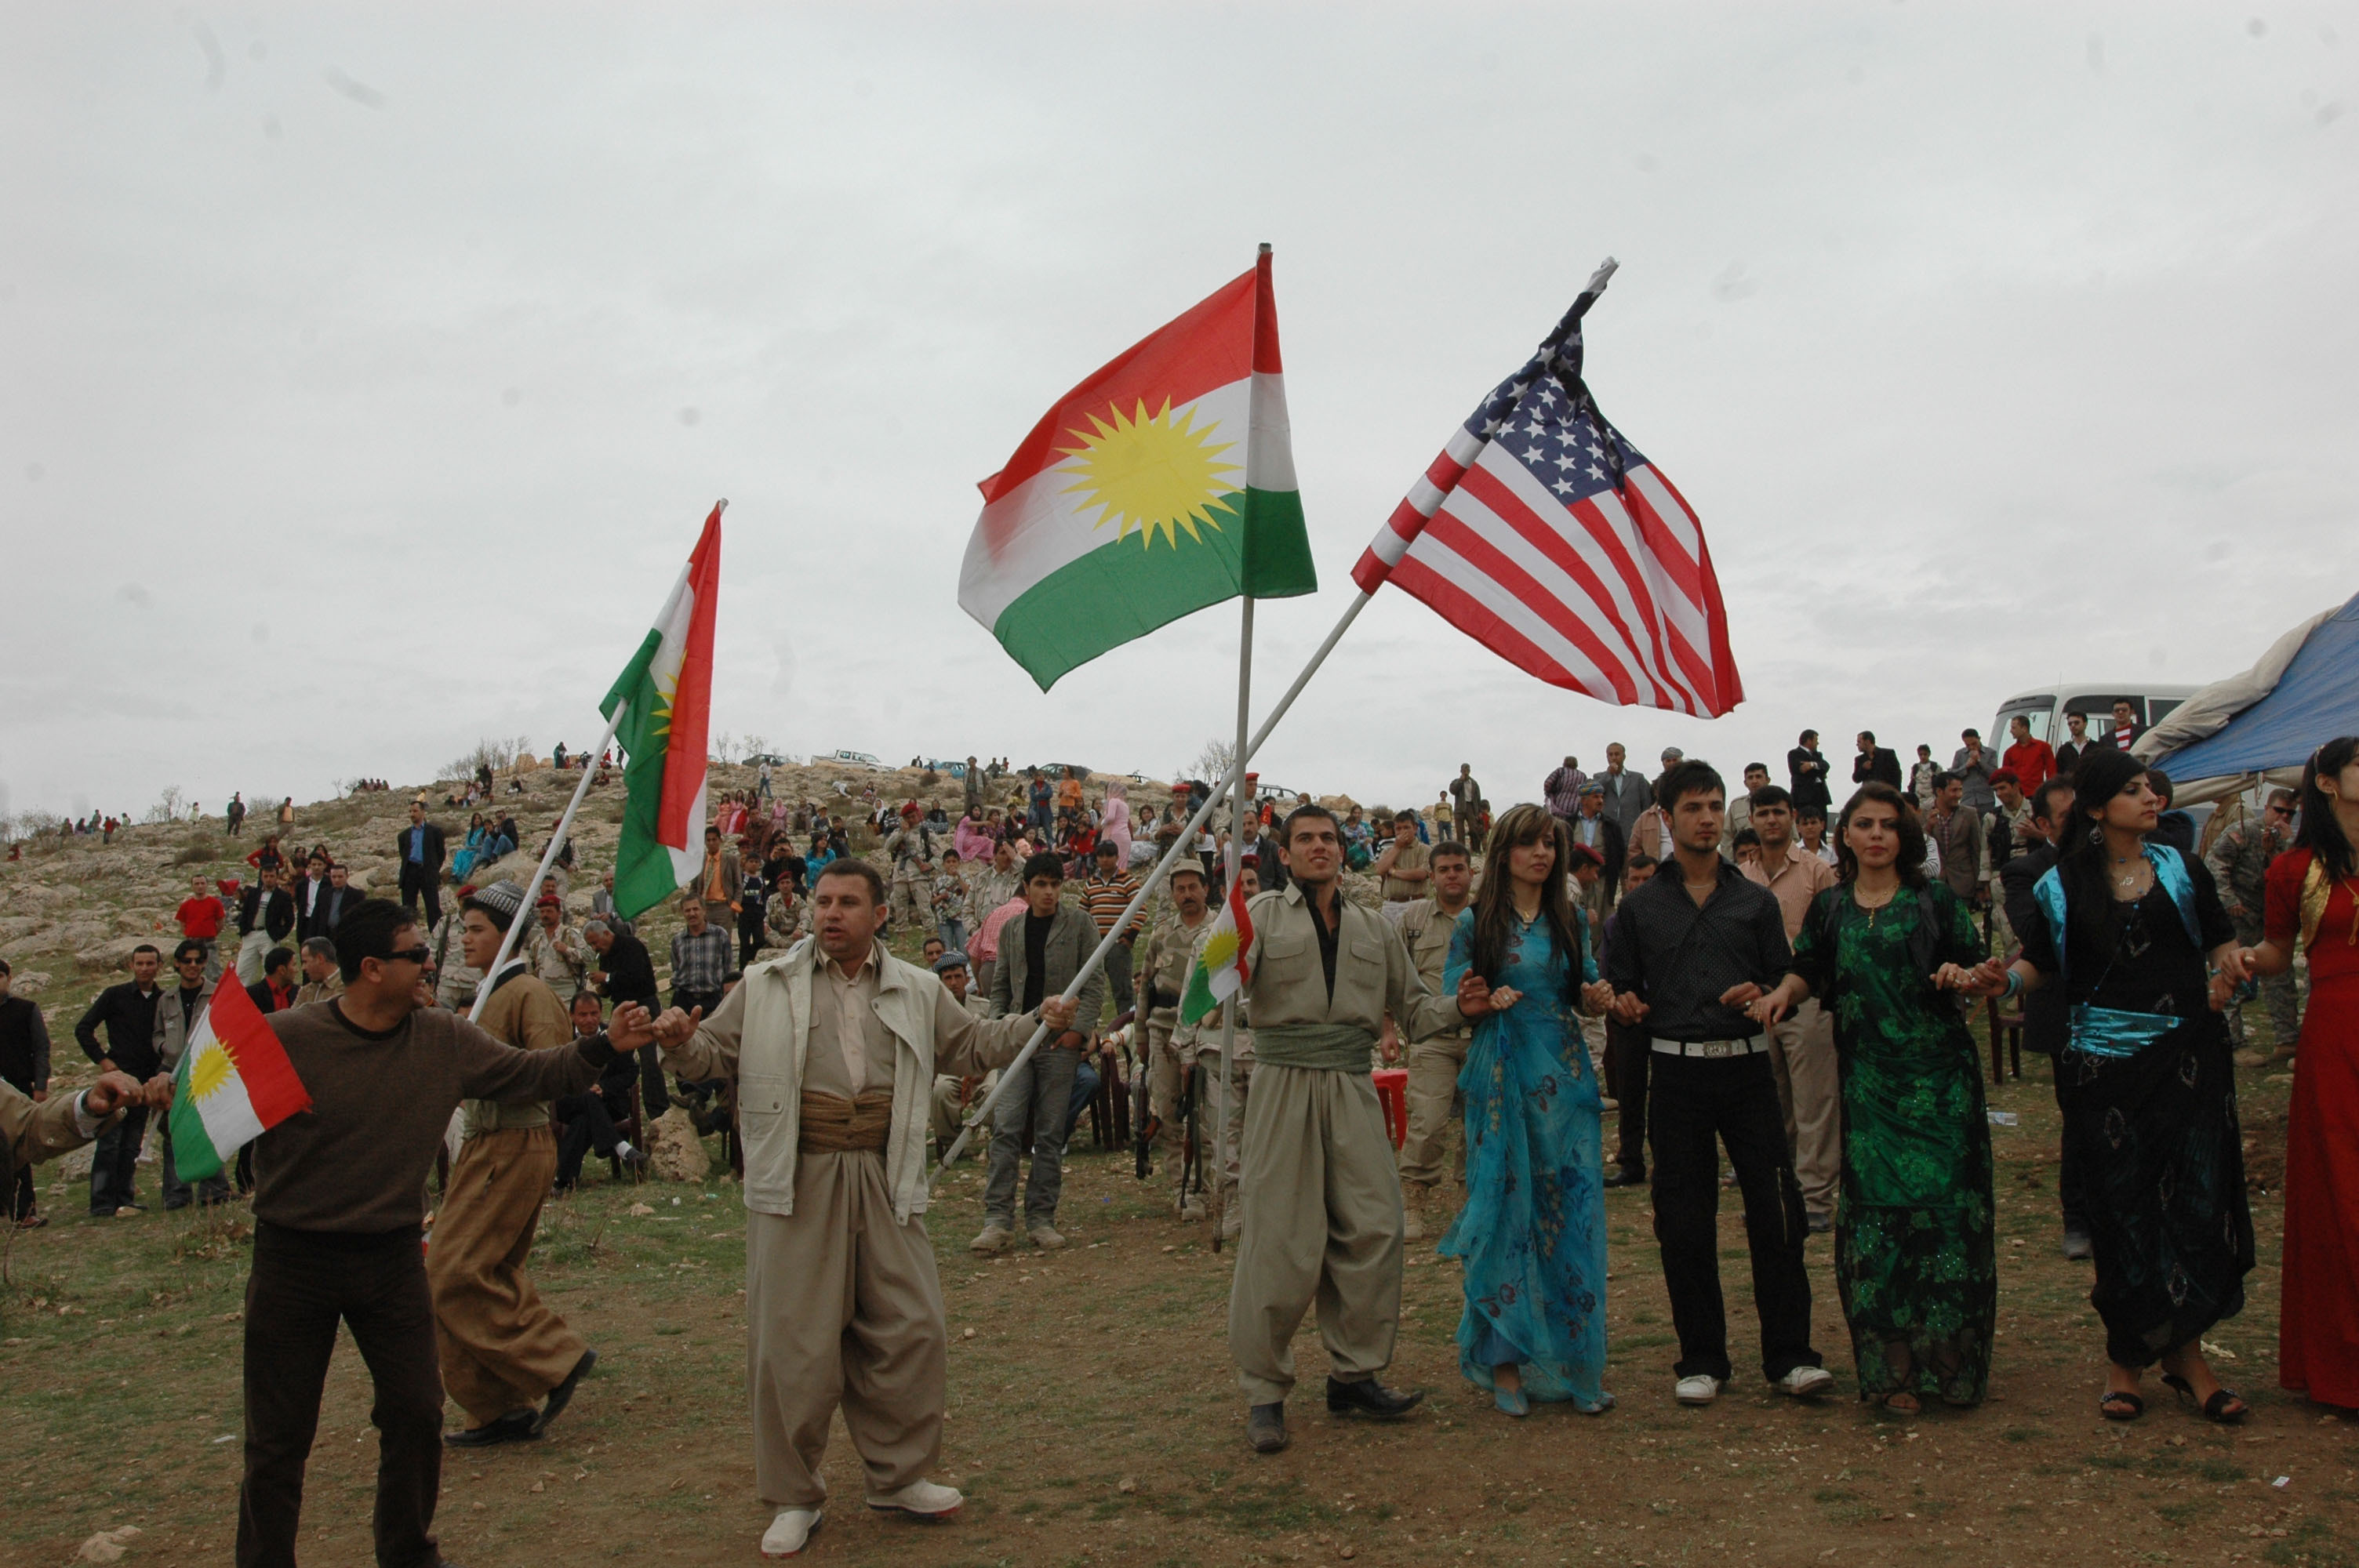 The US Plan C For Syria And Iraq Its Reckless Game With